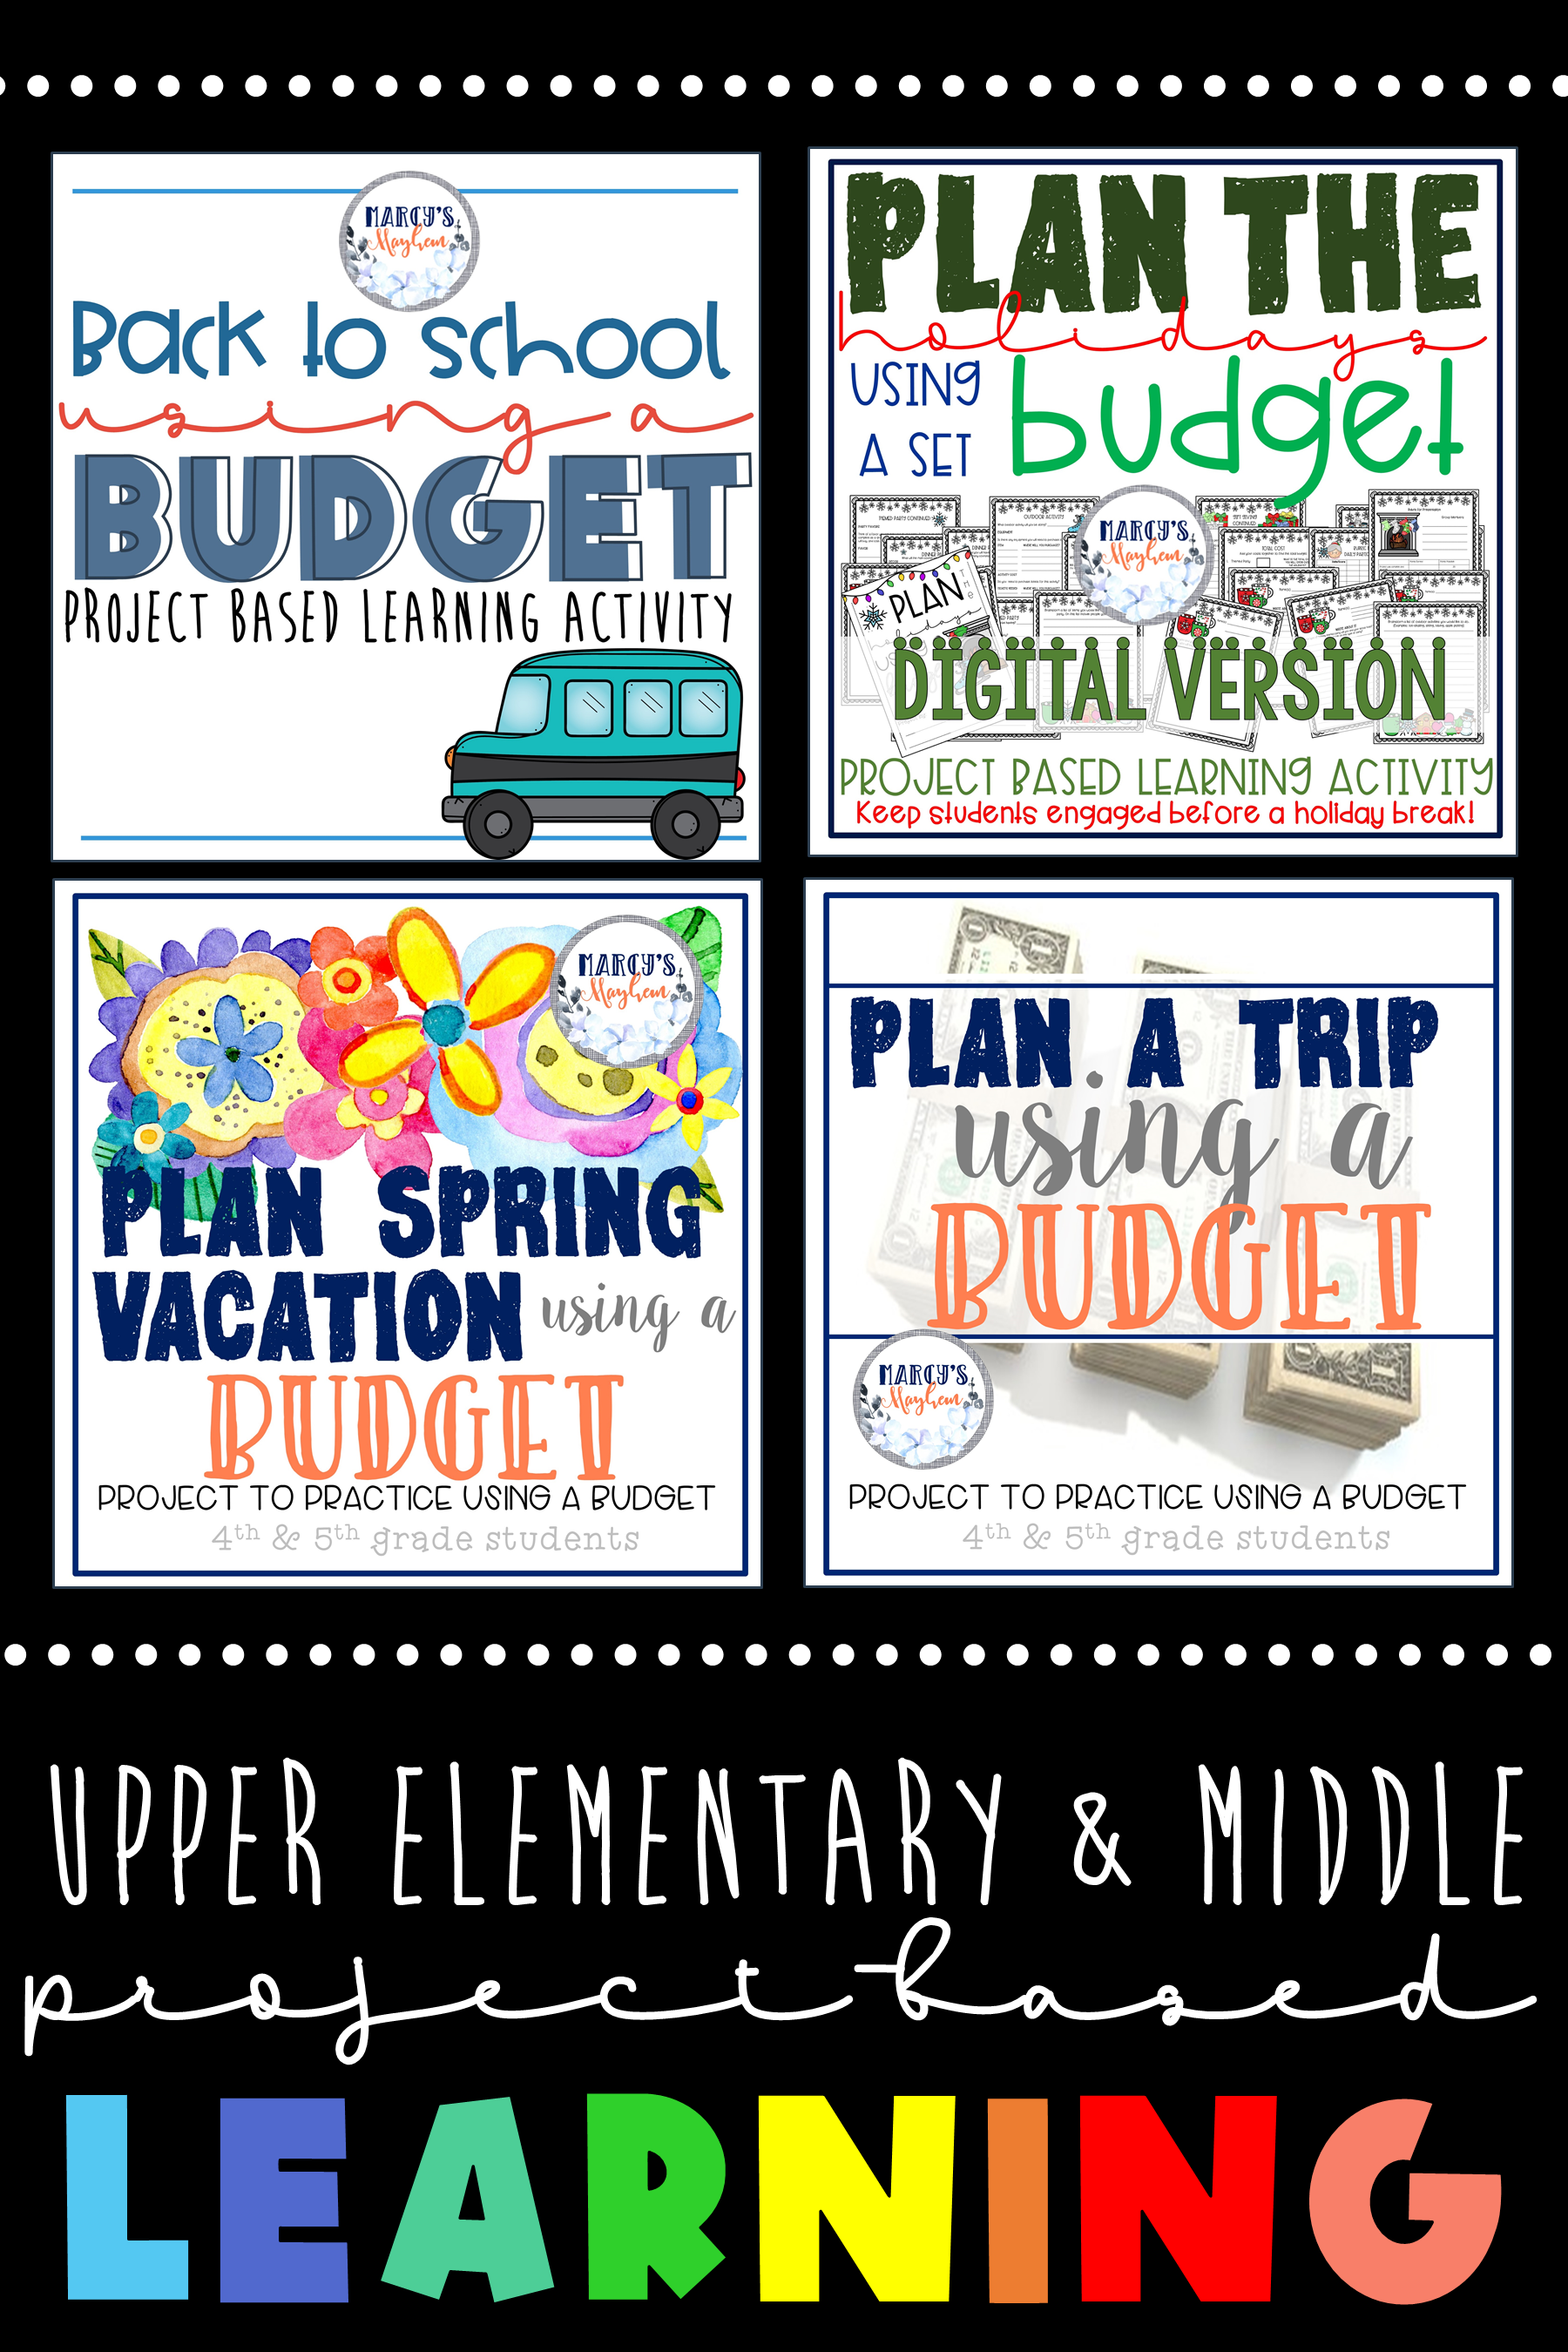 Math Budgeting Project Based Learning Classroom 4th